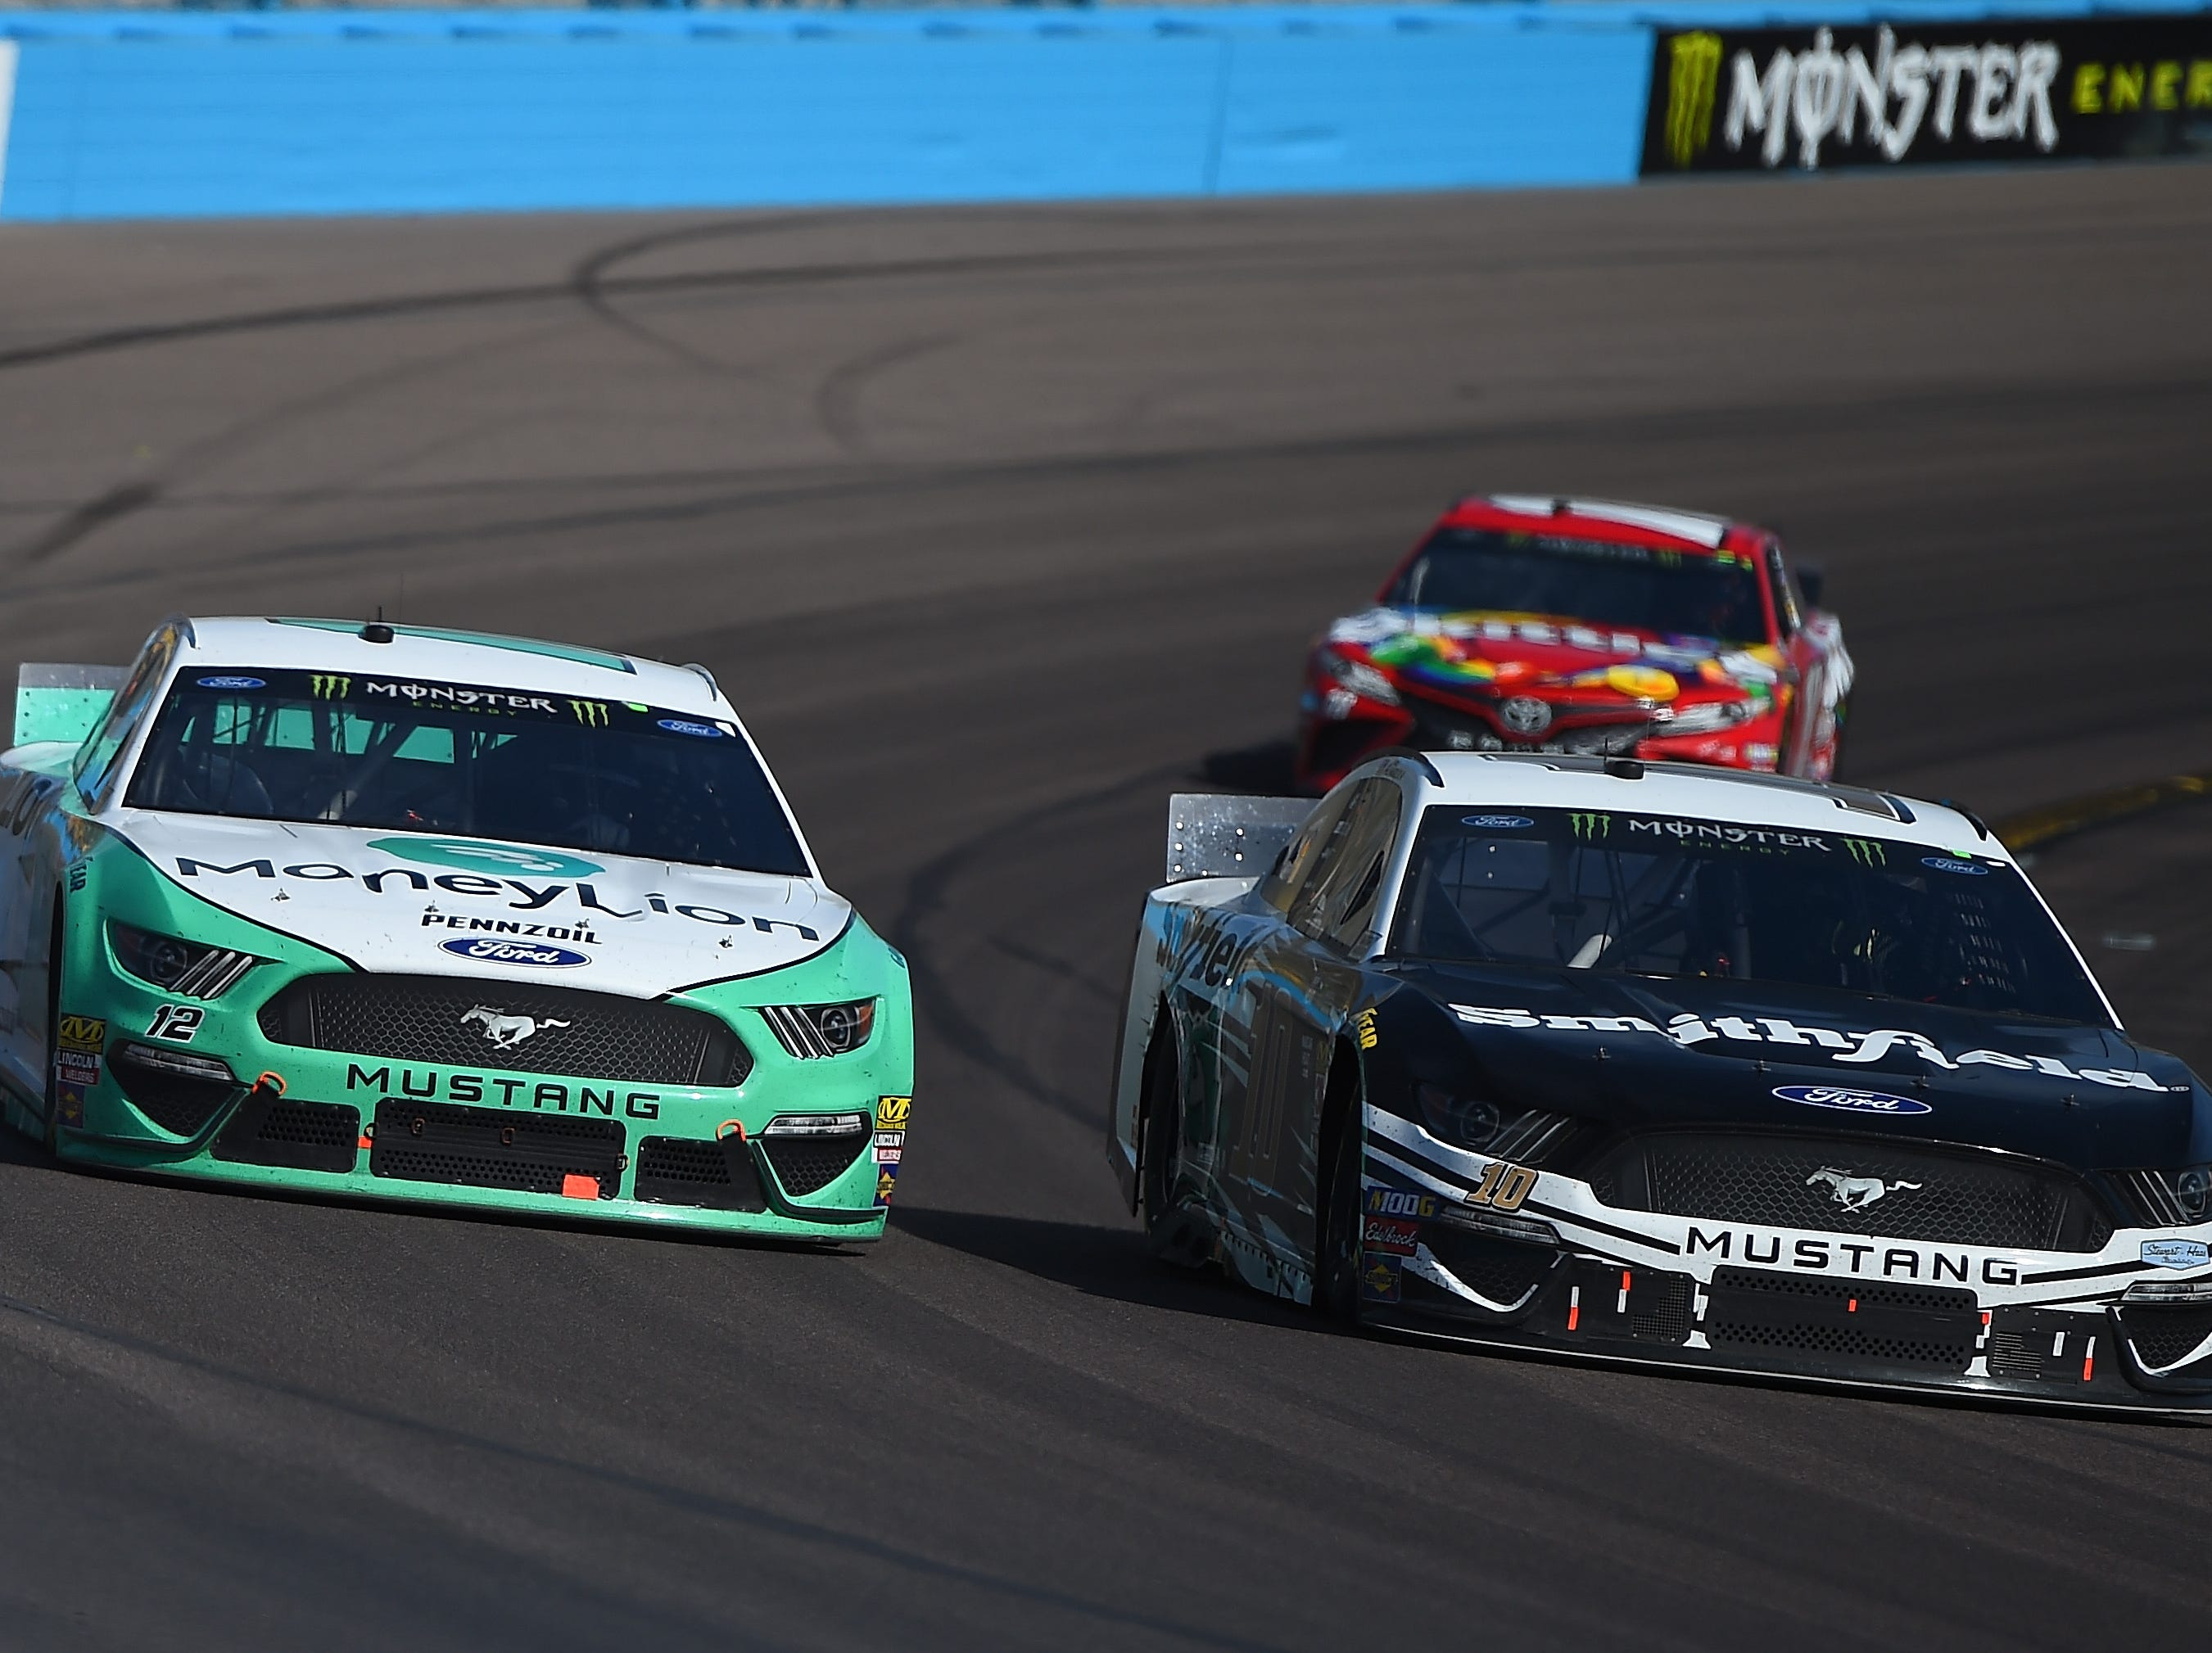 AVONDALE, AZ - MARCH 10:  Ryan Blaney, driver of the #12 MoneyLion Ford, and Aric Almirola, driver of the #10 Smithfield Ford, race during the Monster Energy NASCAR Cup Series TicketGuardian 500 at ISM Raceway on March 10, 2019 in Avondale, Arizona.  (Photo by Stacy Revere/Getty Images)